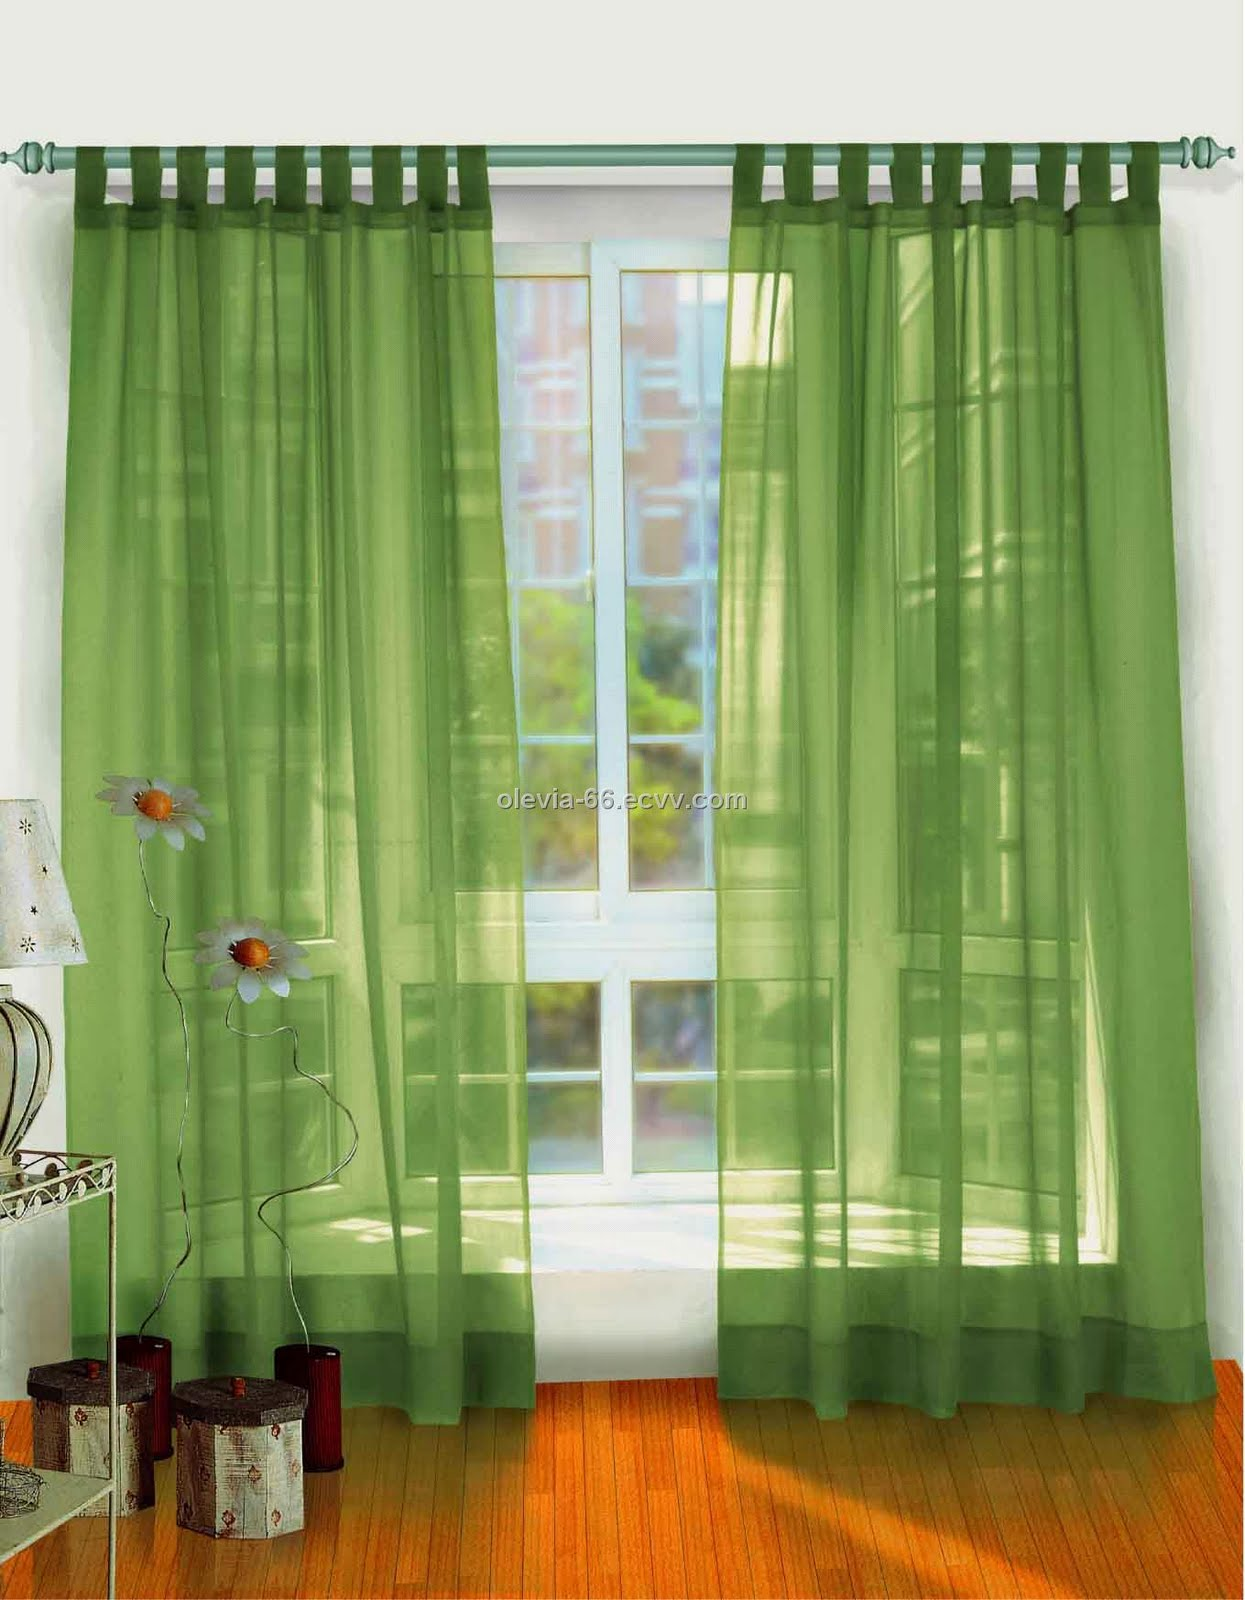 Best curtain designs just take a look trendy curtain designs - Curtain photo designs ...